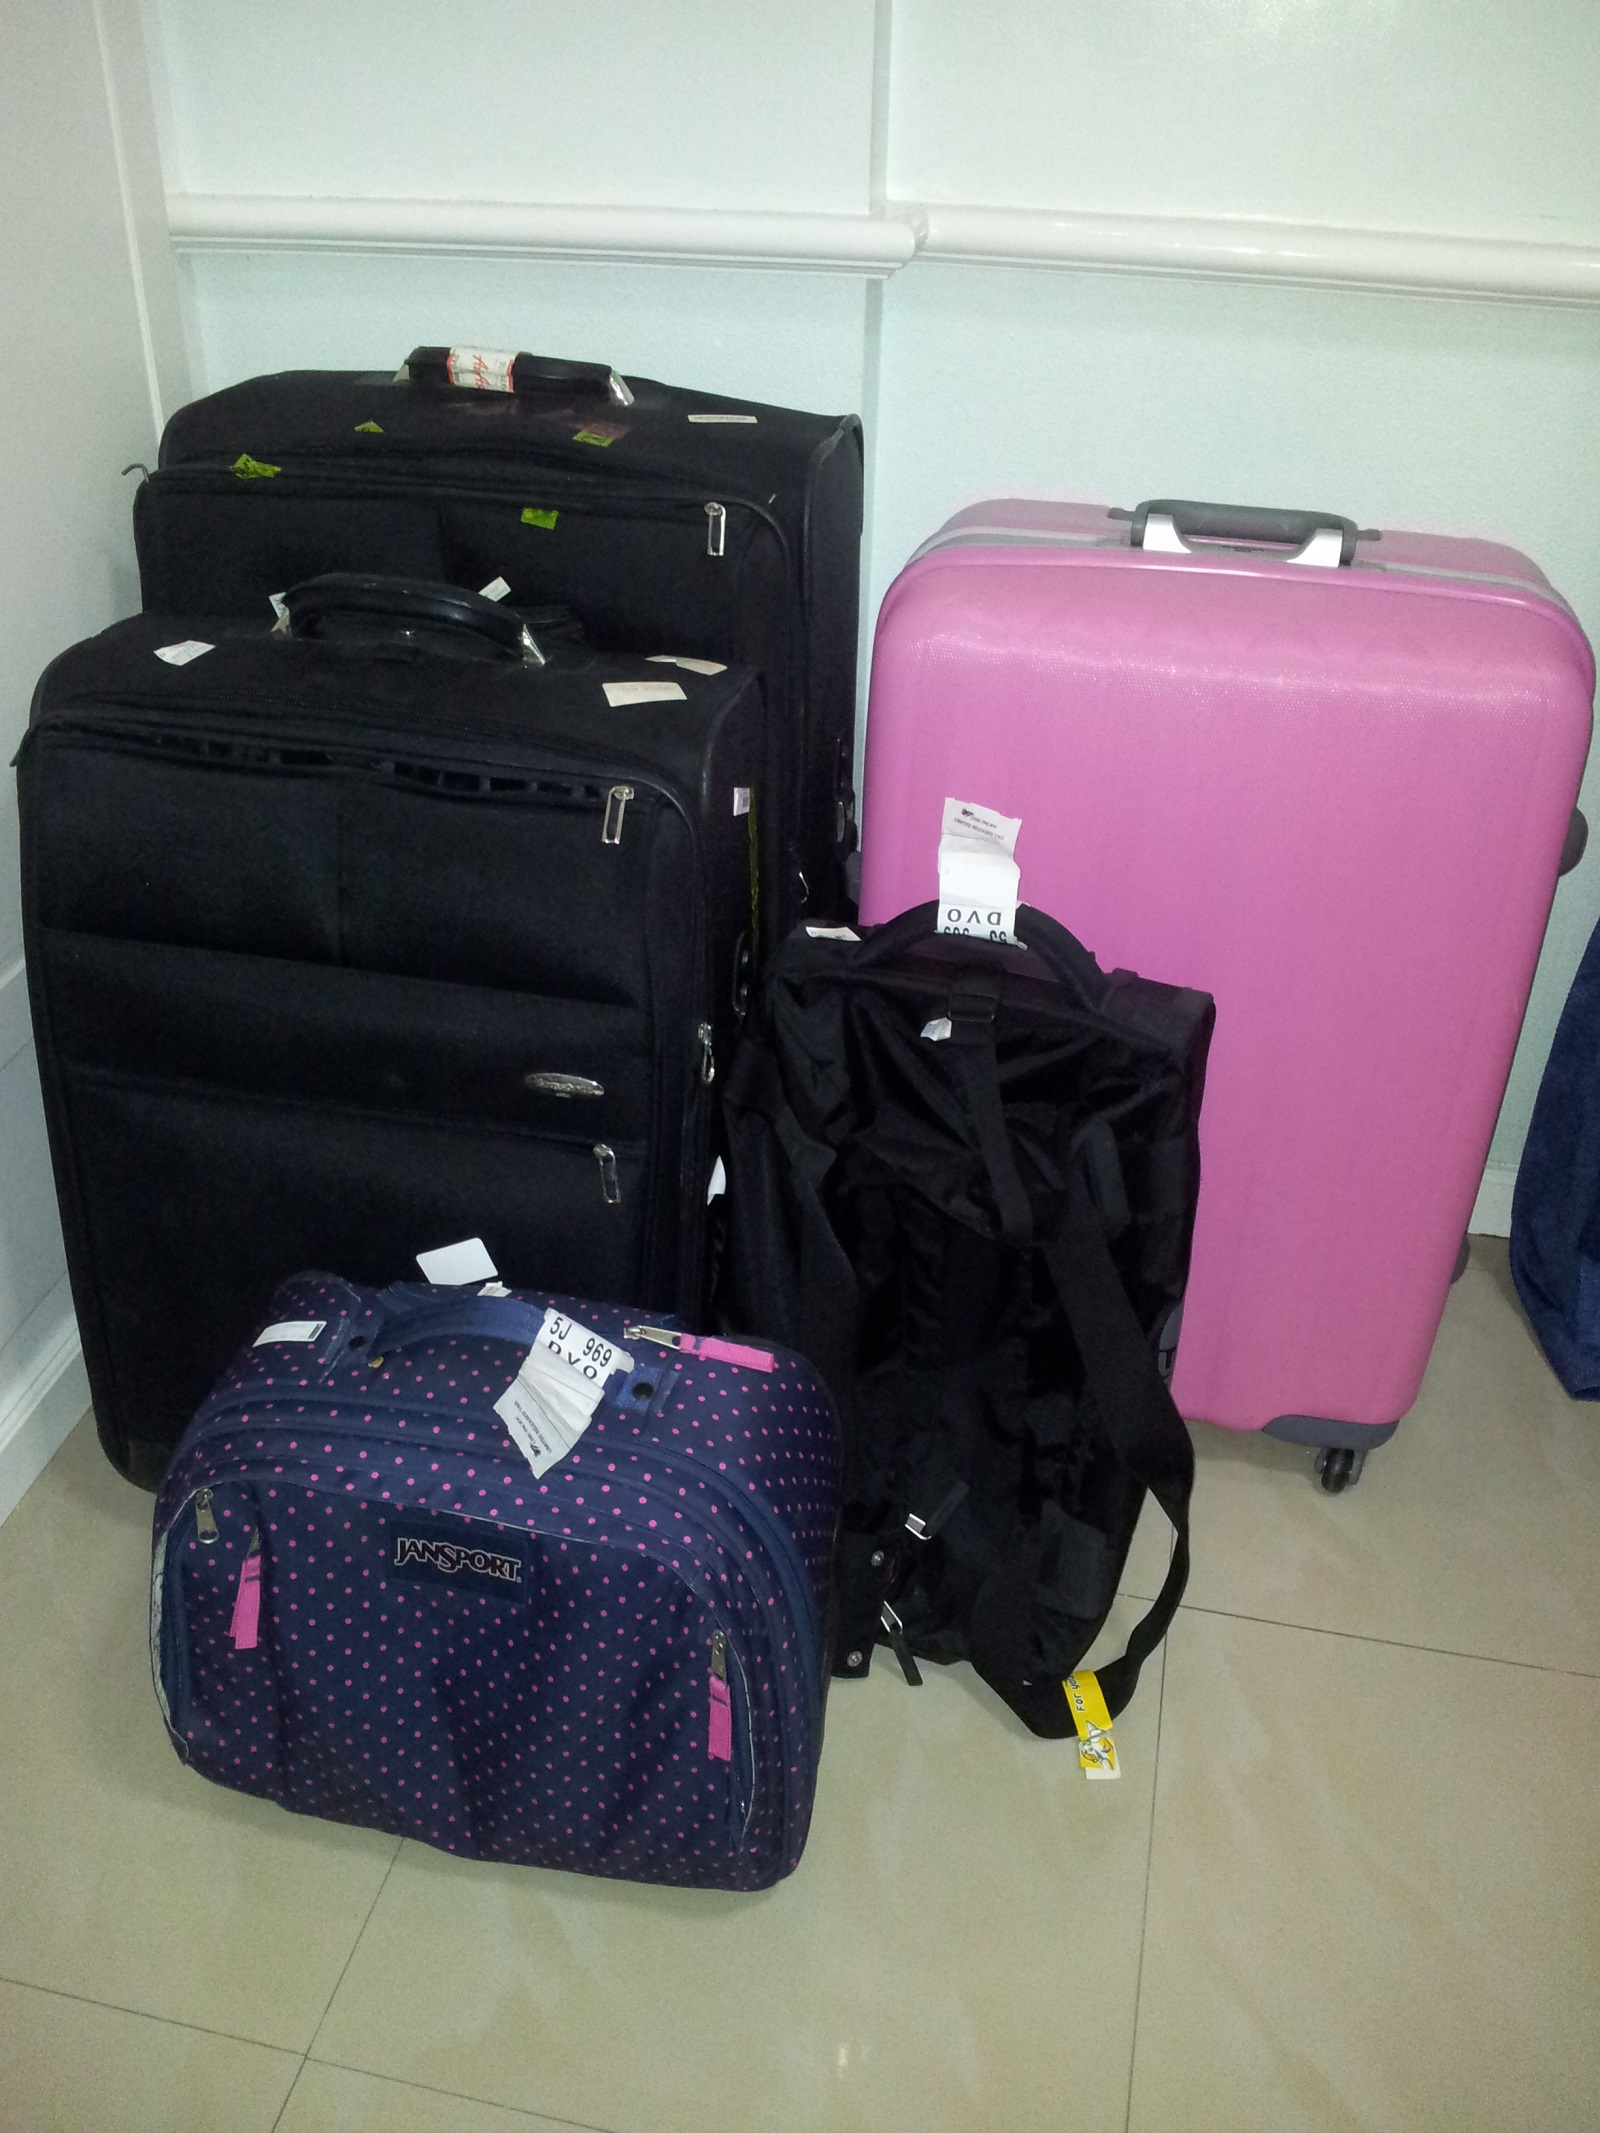 Our Travel Luggage